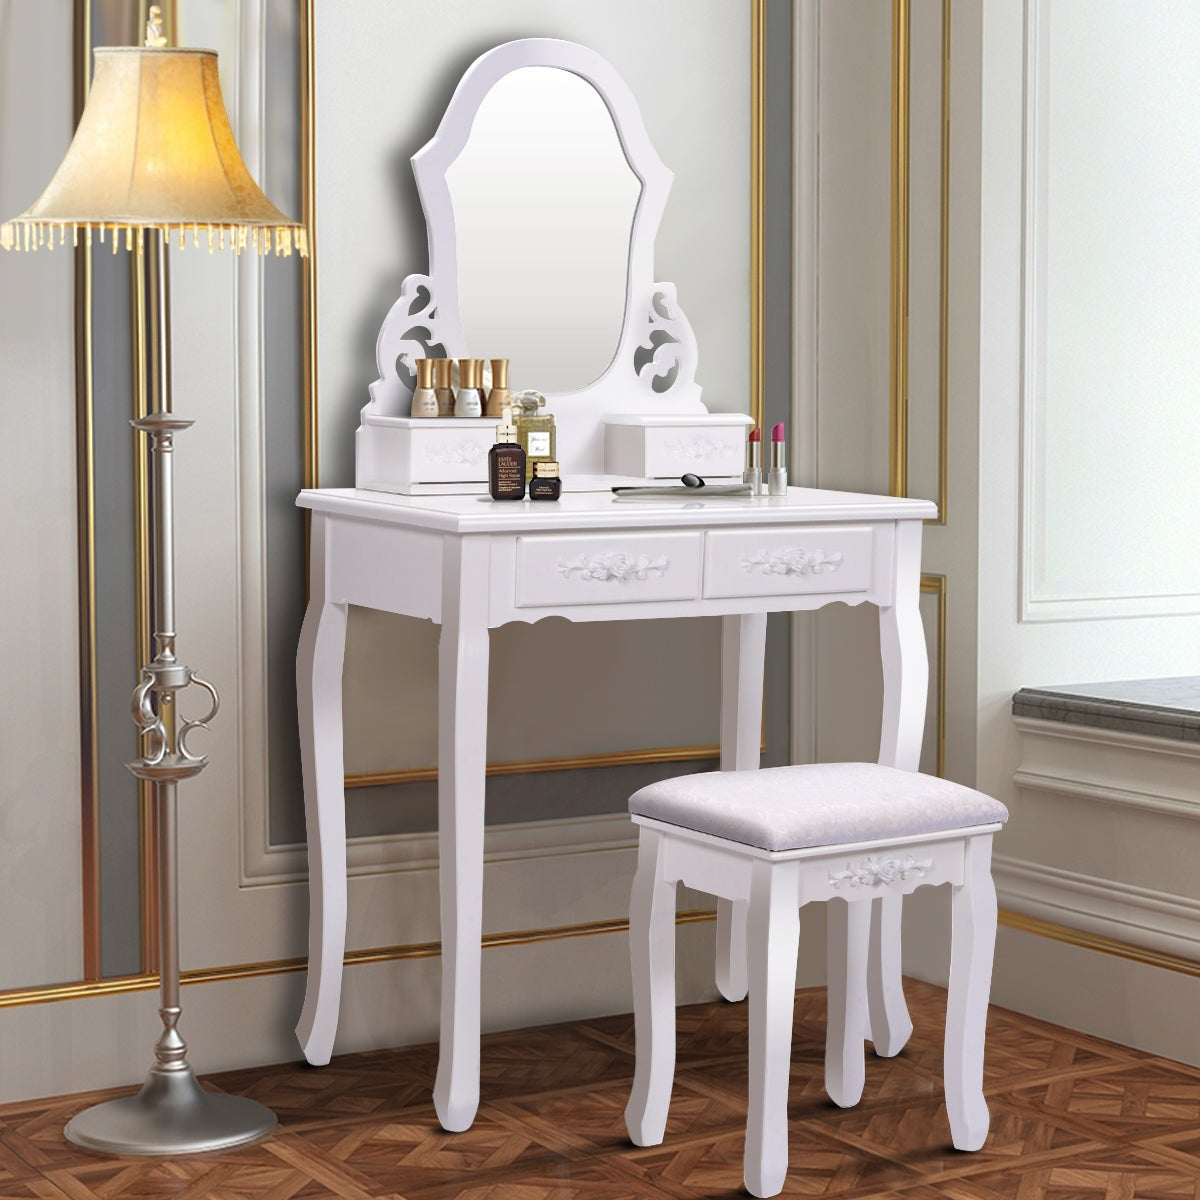 Costway White Vanity Jewelry Wooden Makeup Dressing Table Set Bathroom W Stool Mirror 4 Drawer